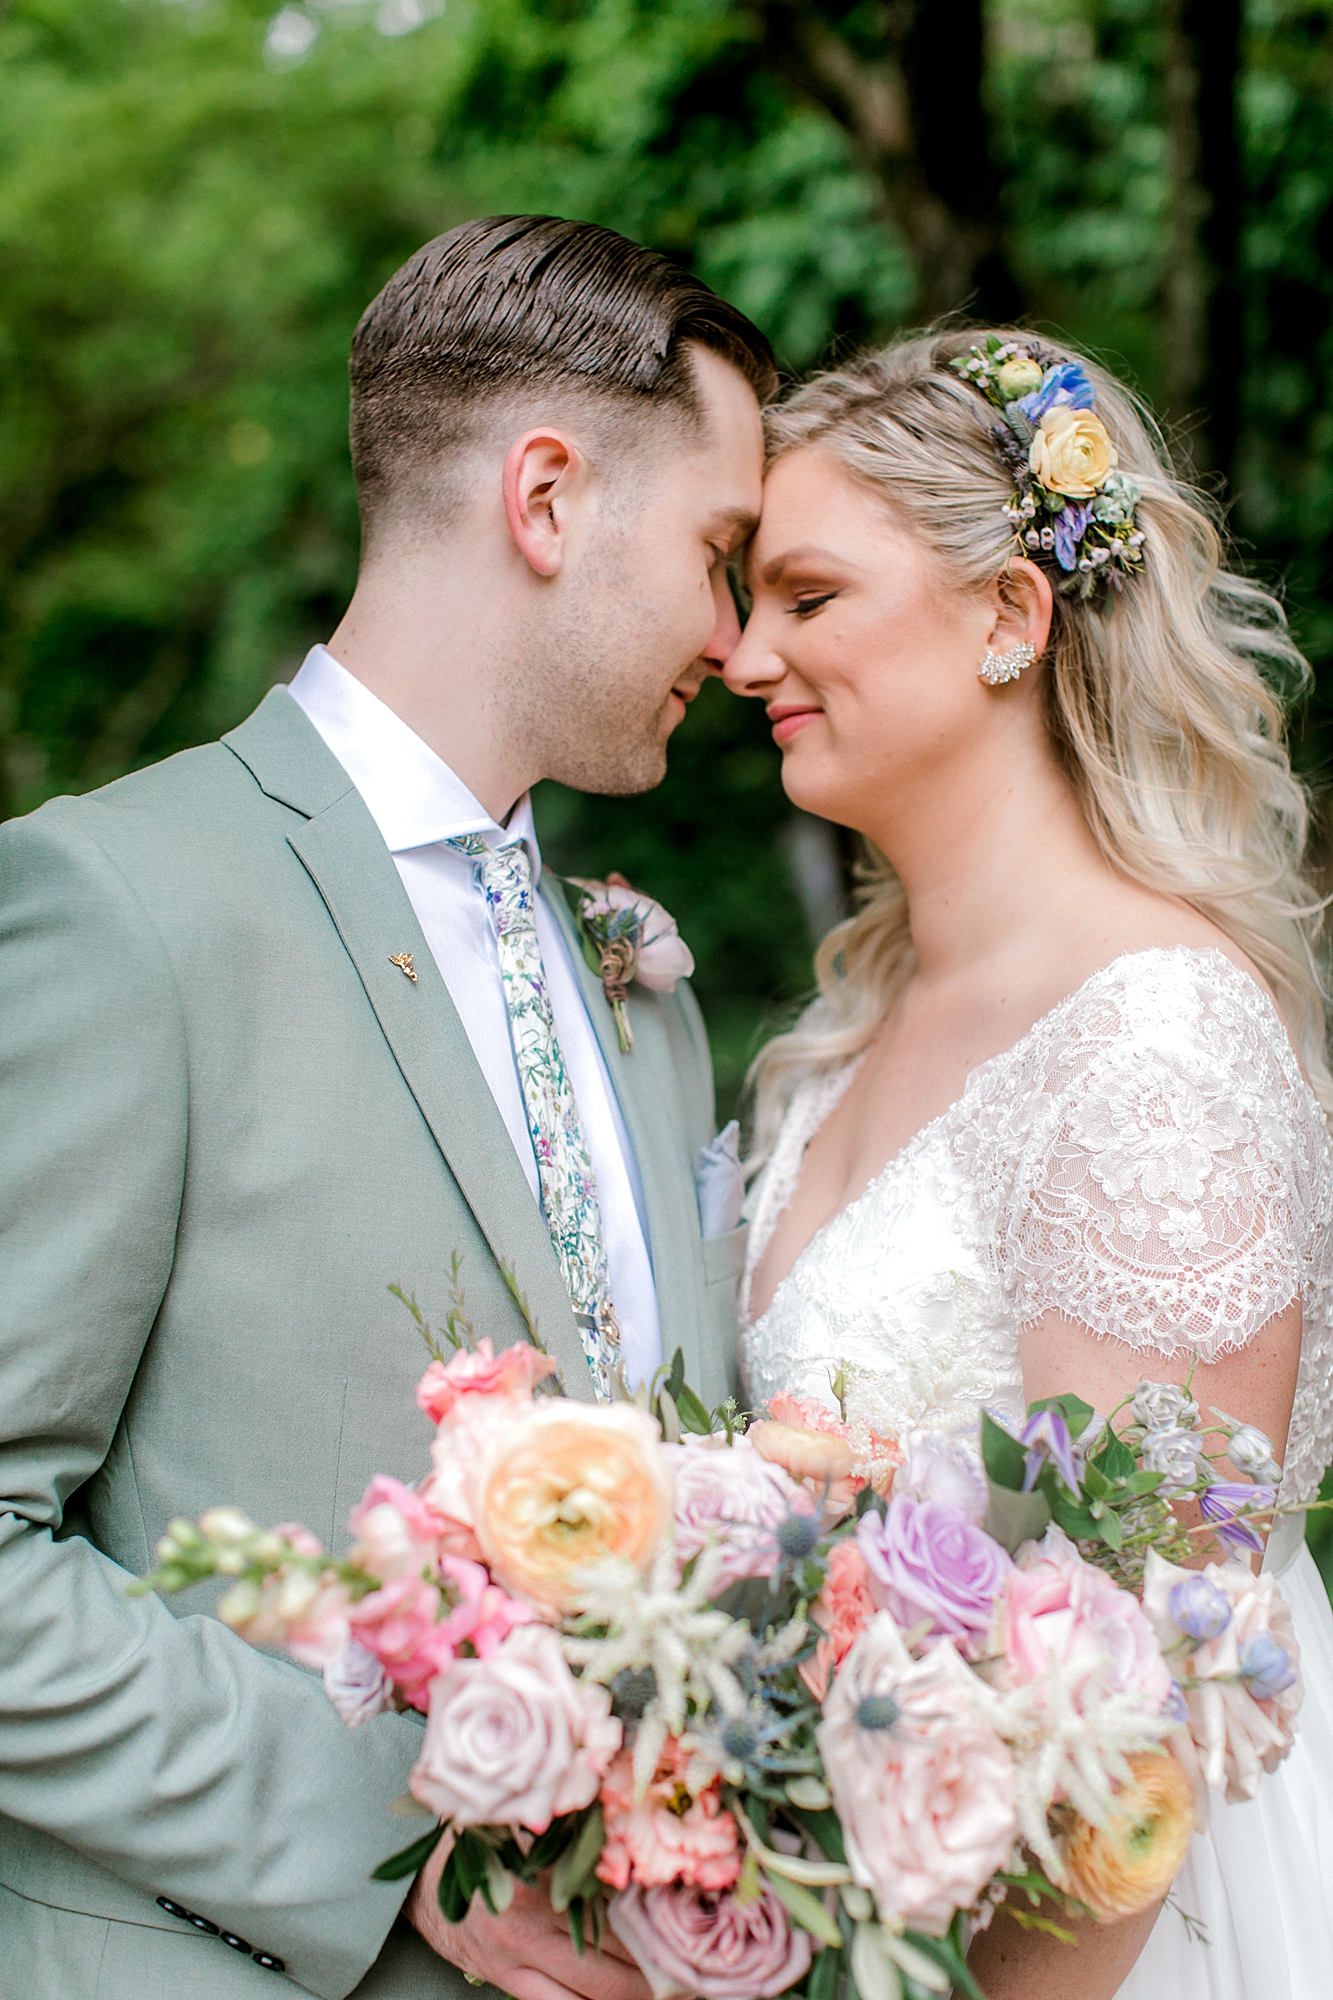 Intimate and Sweet Estate Wedding Photography by Magdalena Studios 0049